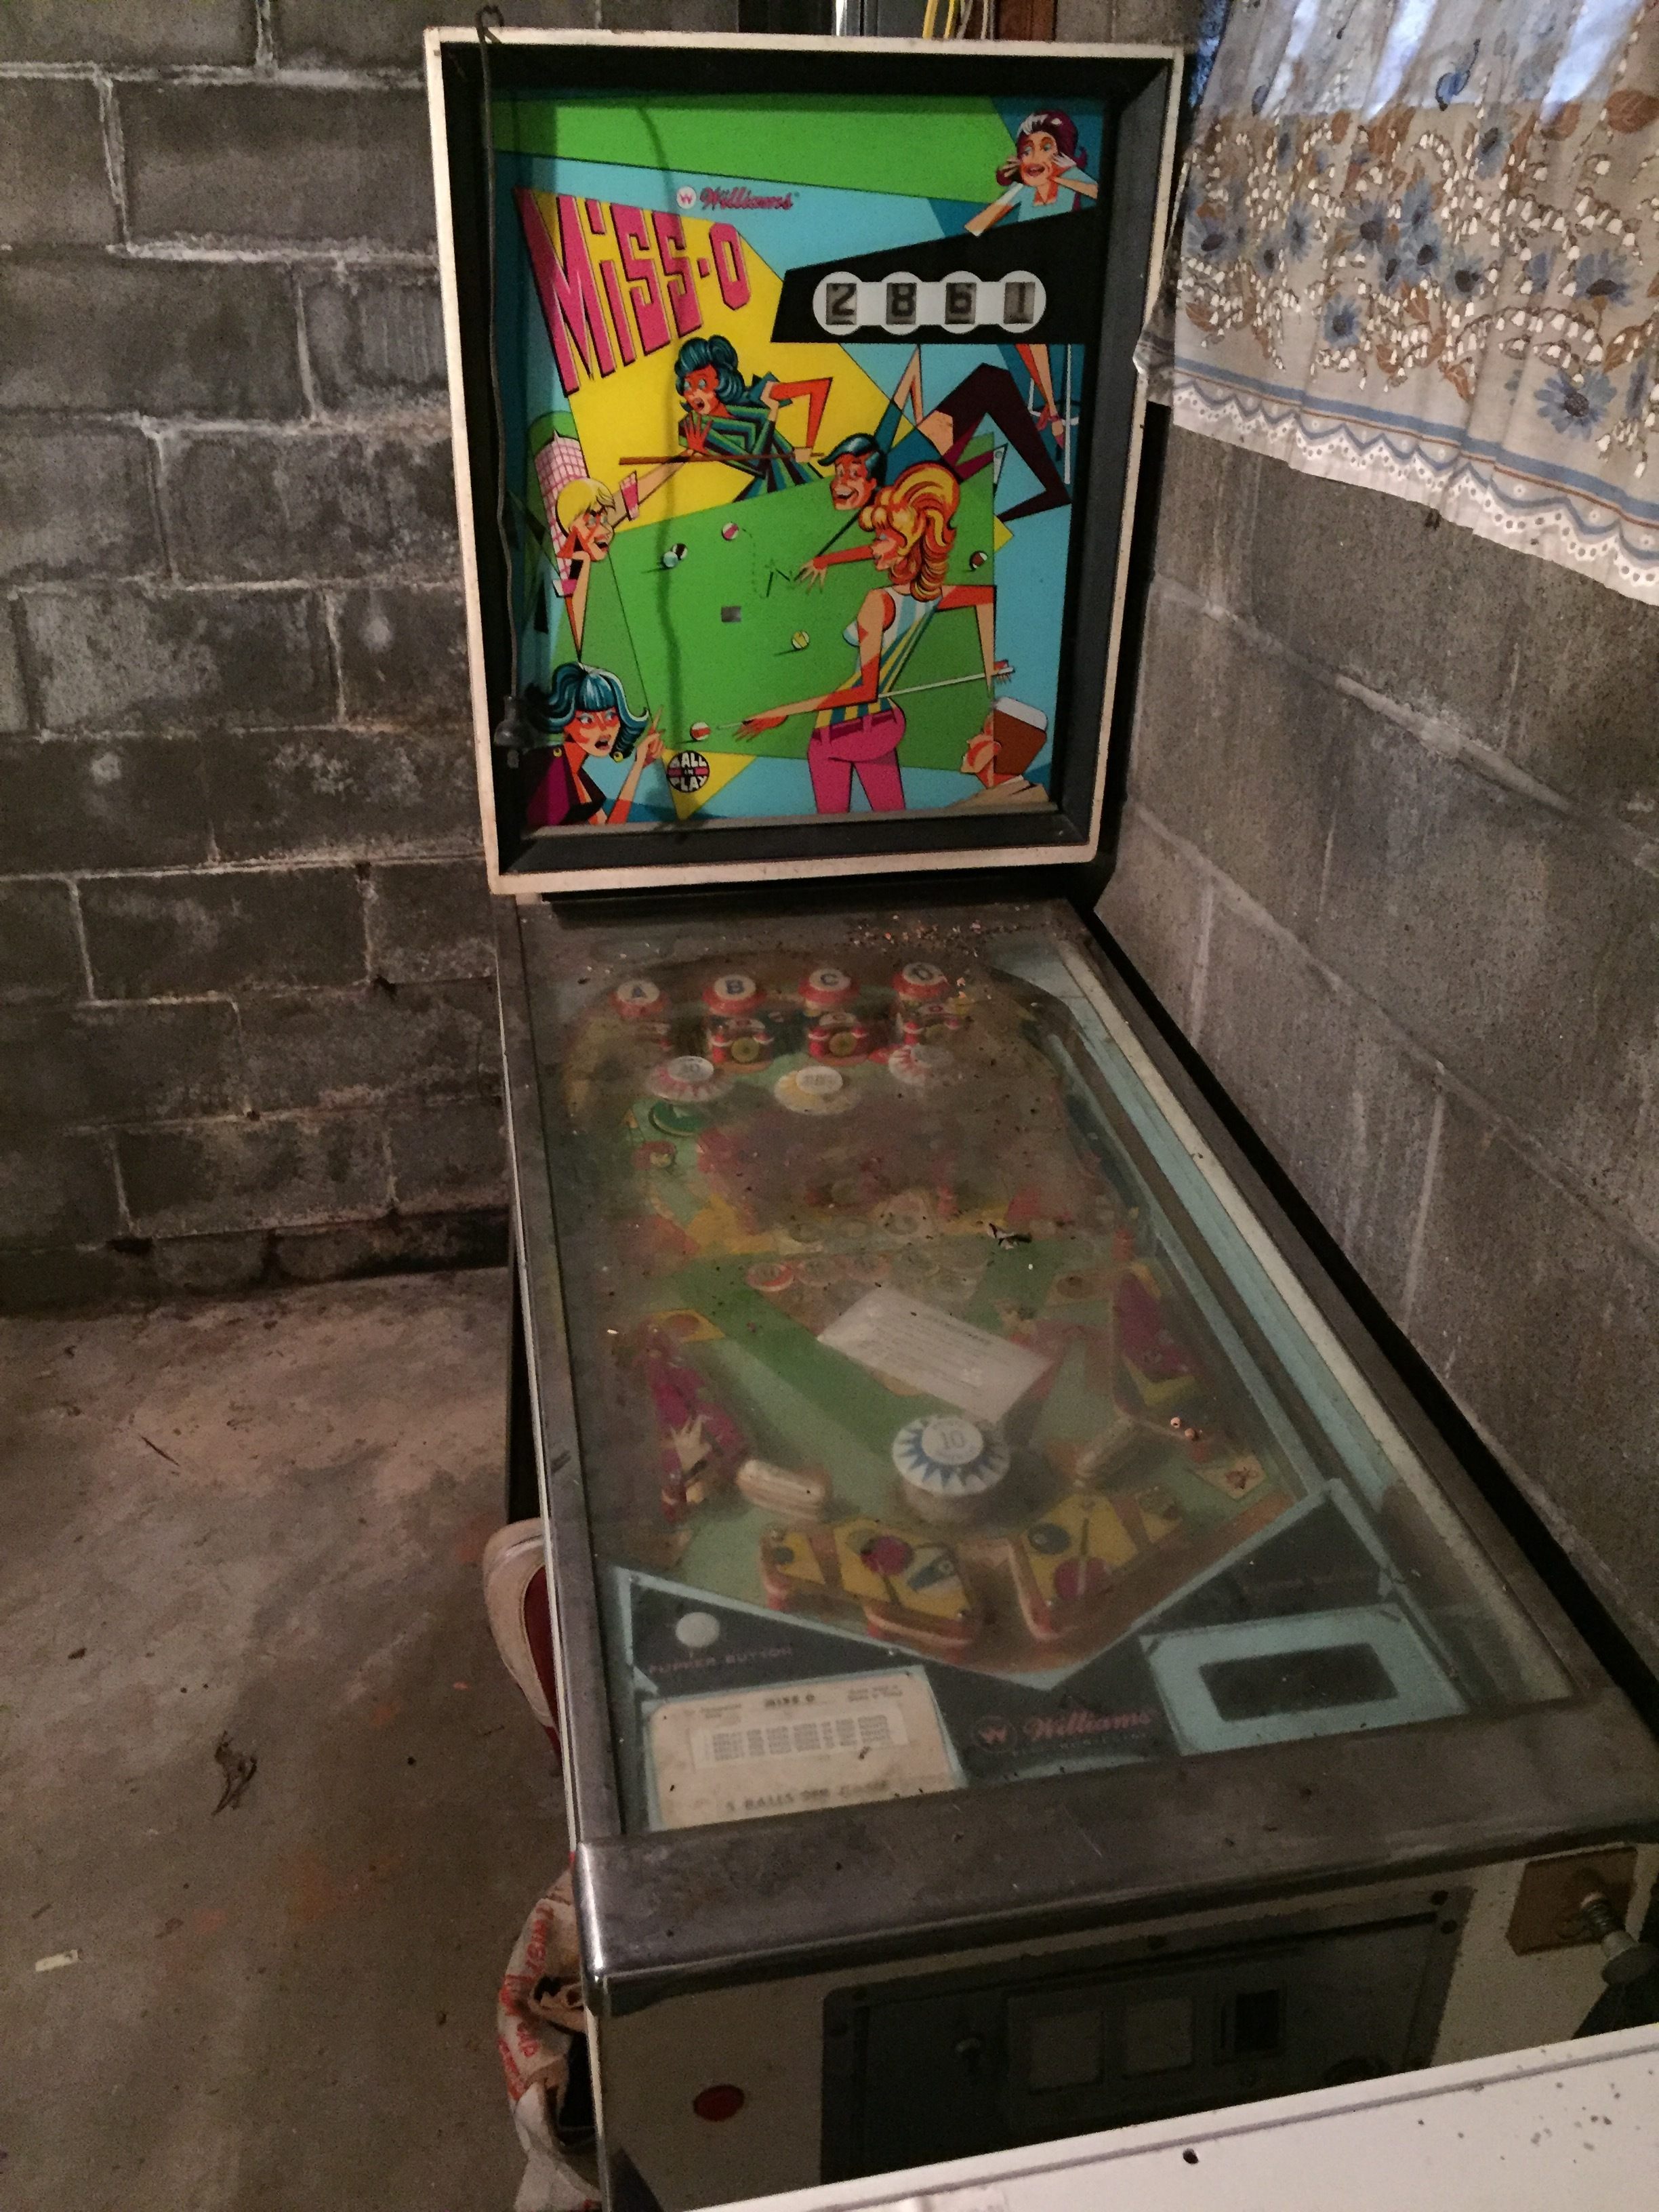 If anyone local is looking for a sweet pinball machine let me know! I will connect you.